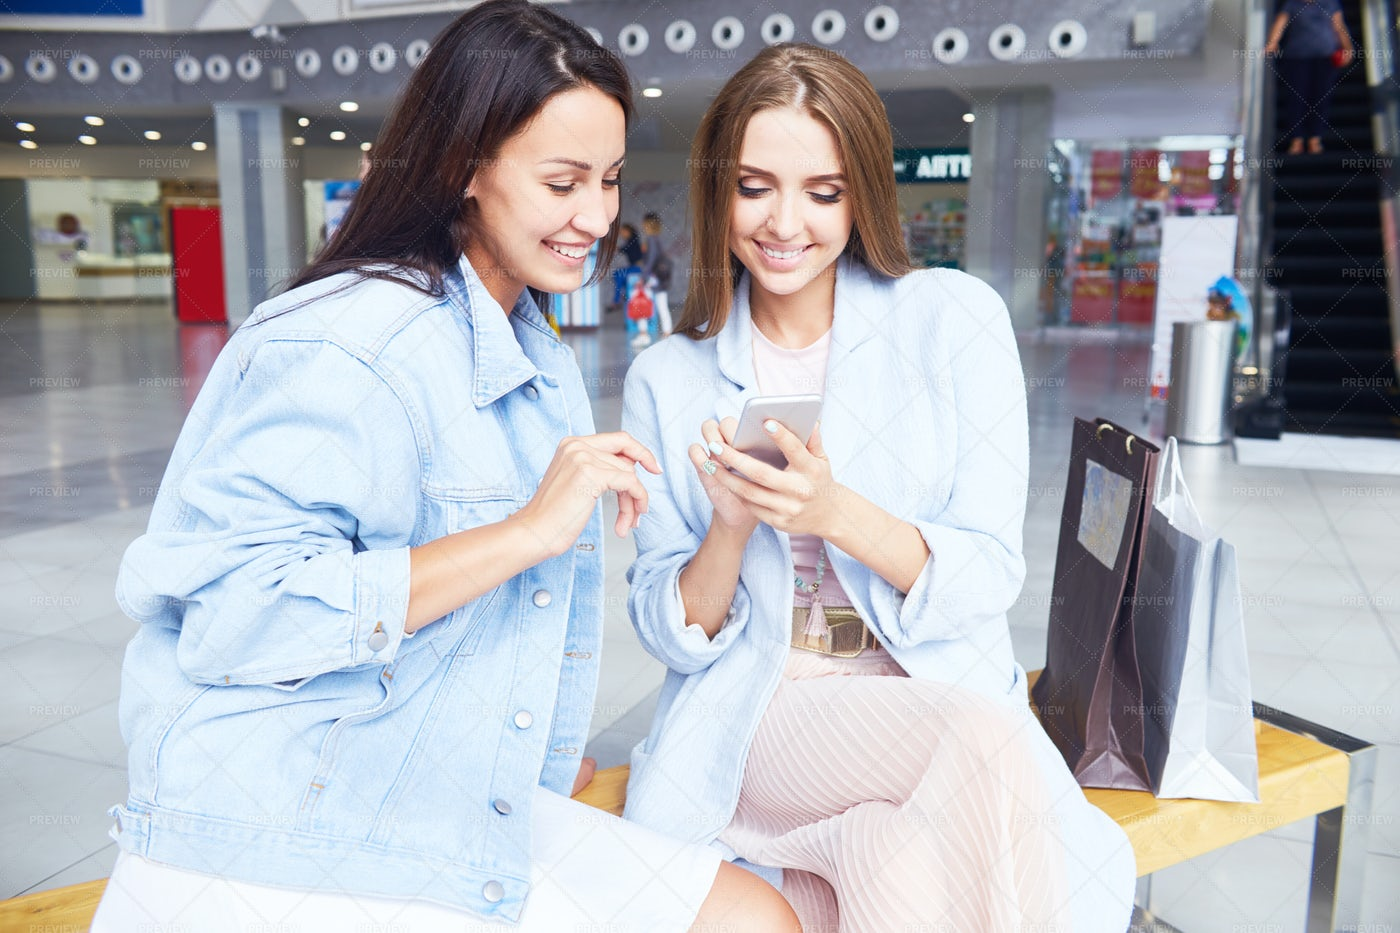 Two Girls Using Smartphone In...: Stock Photos